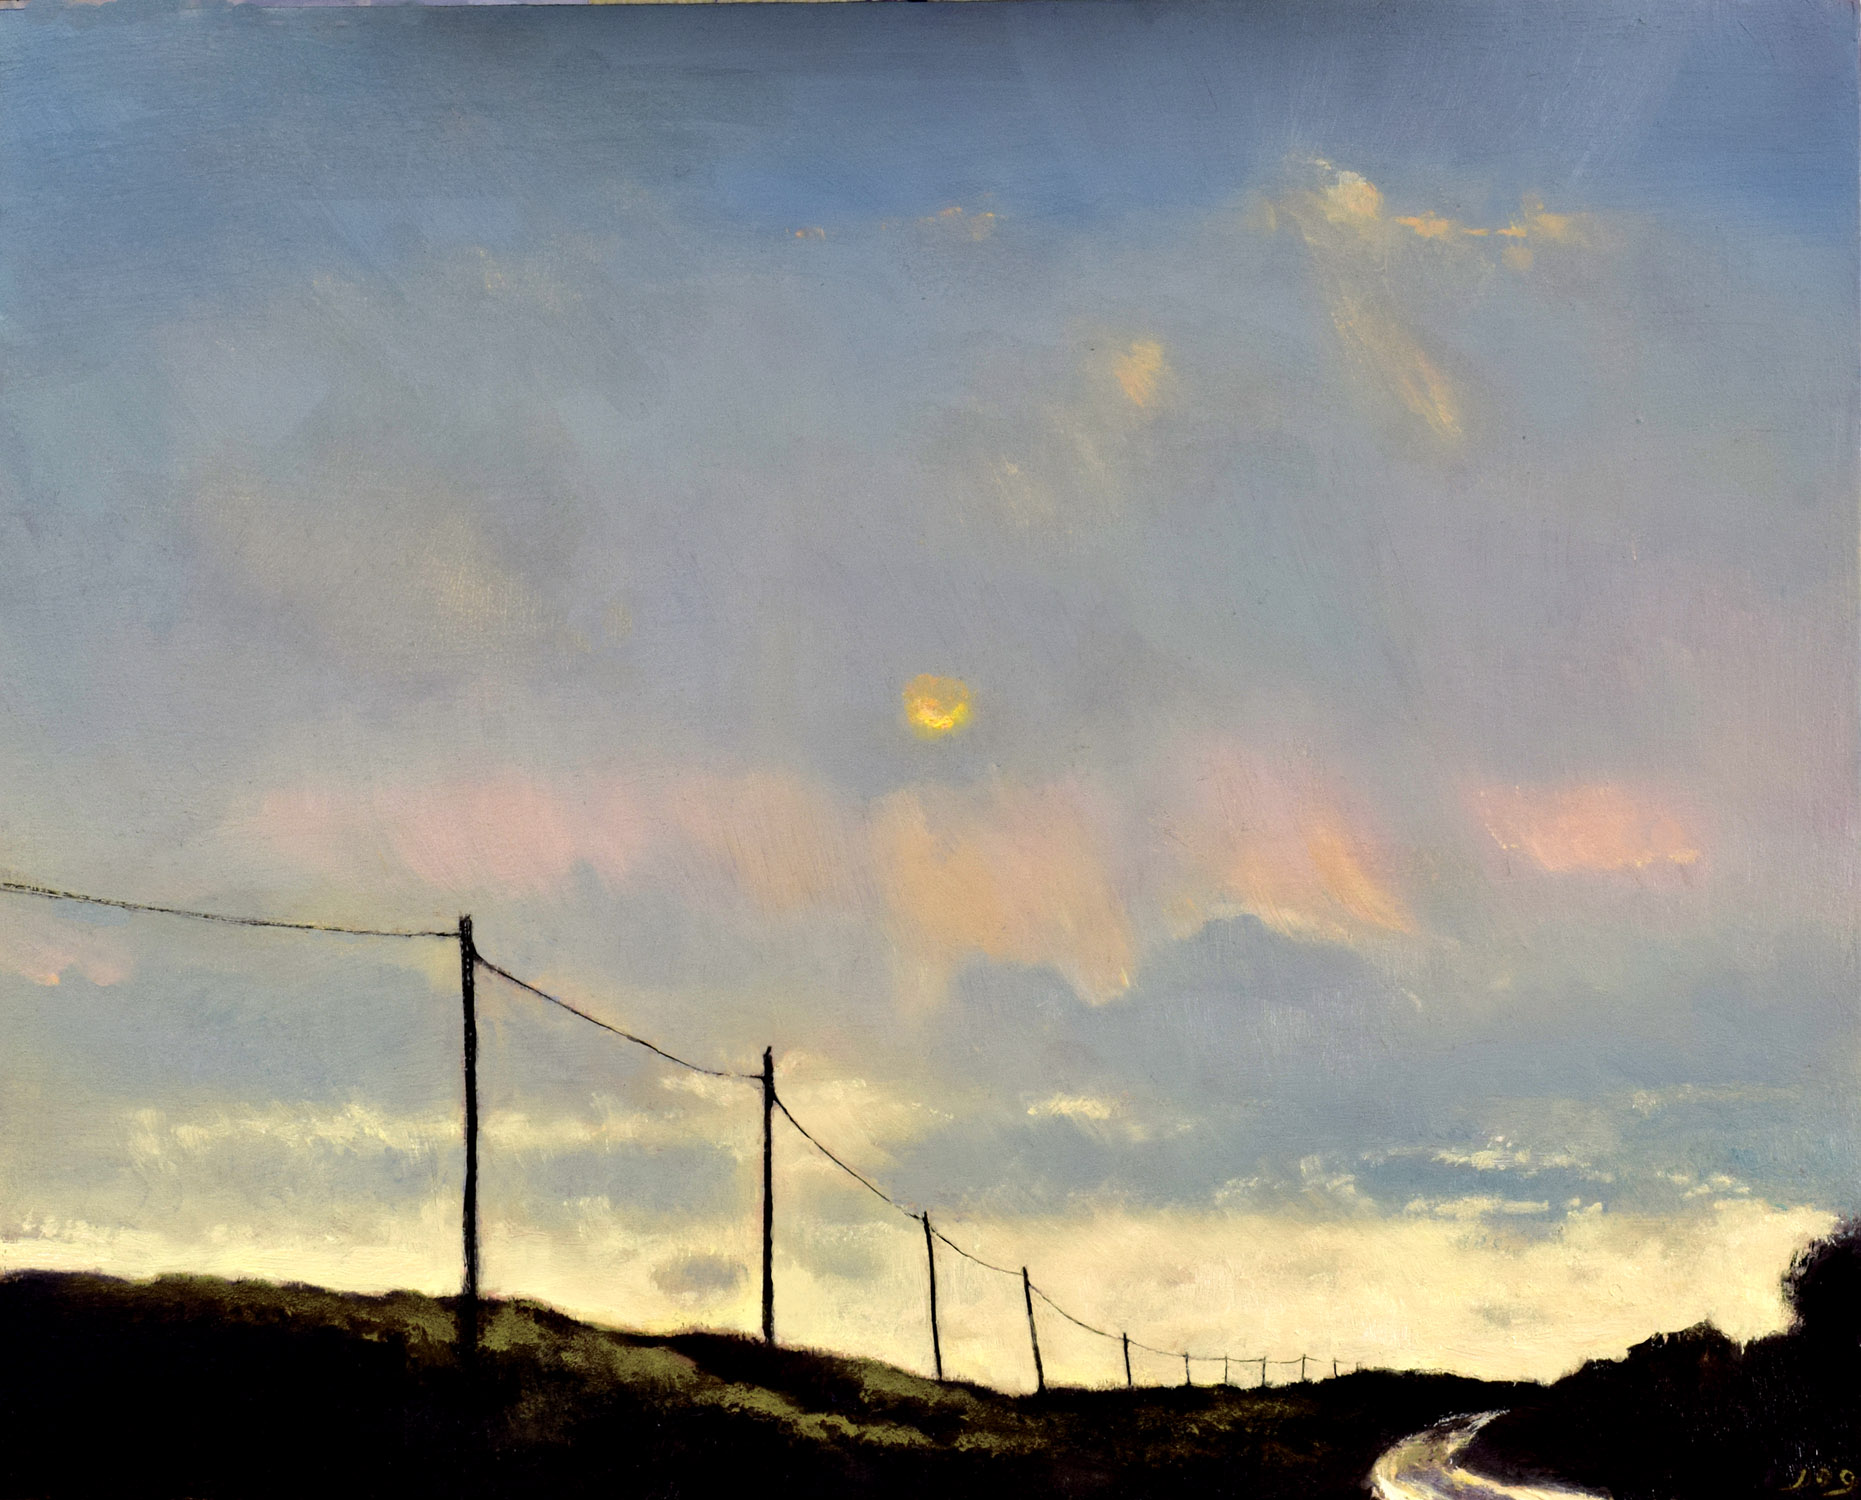 John O'Grady - The Road to the Sea II | An atmospheric landscape painting with a dark sky above the road that leads us towards light on the horizon and the ocean